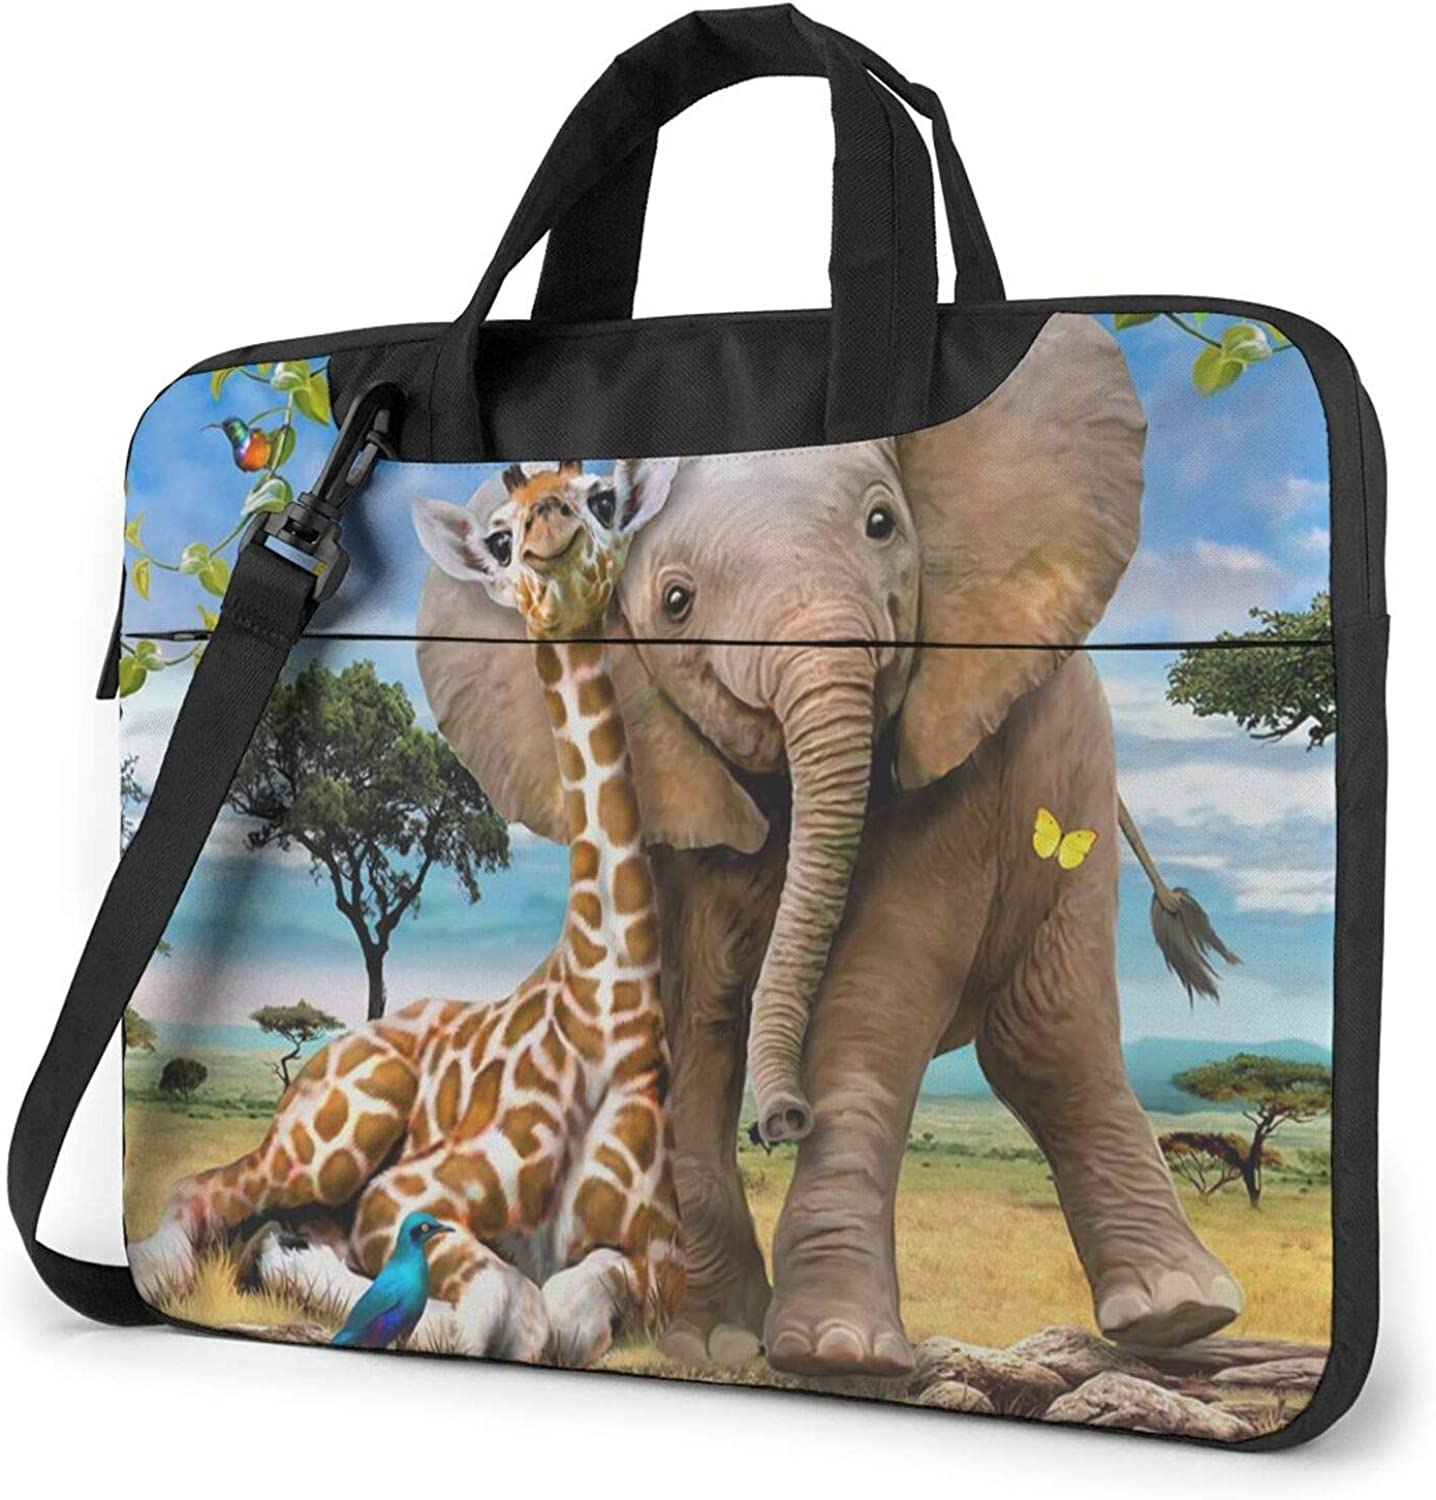 Laptop Shoulder Bag Elephant And Regular store Giraffe Tote Computer New Free Shipping Messe